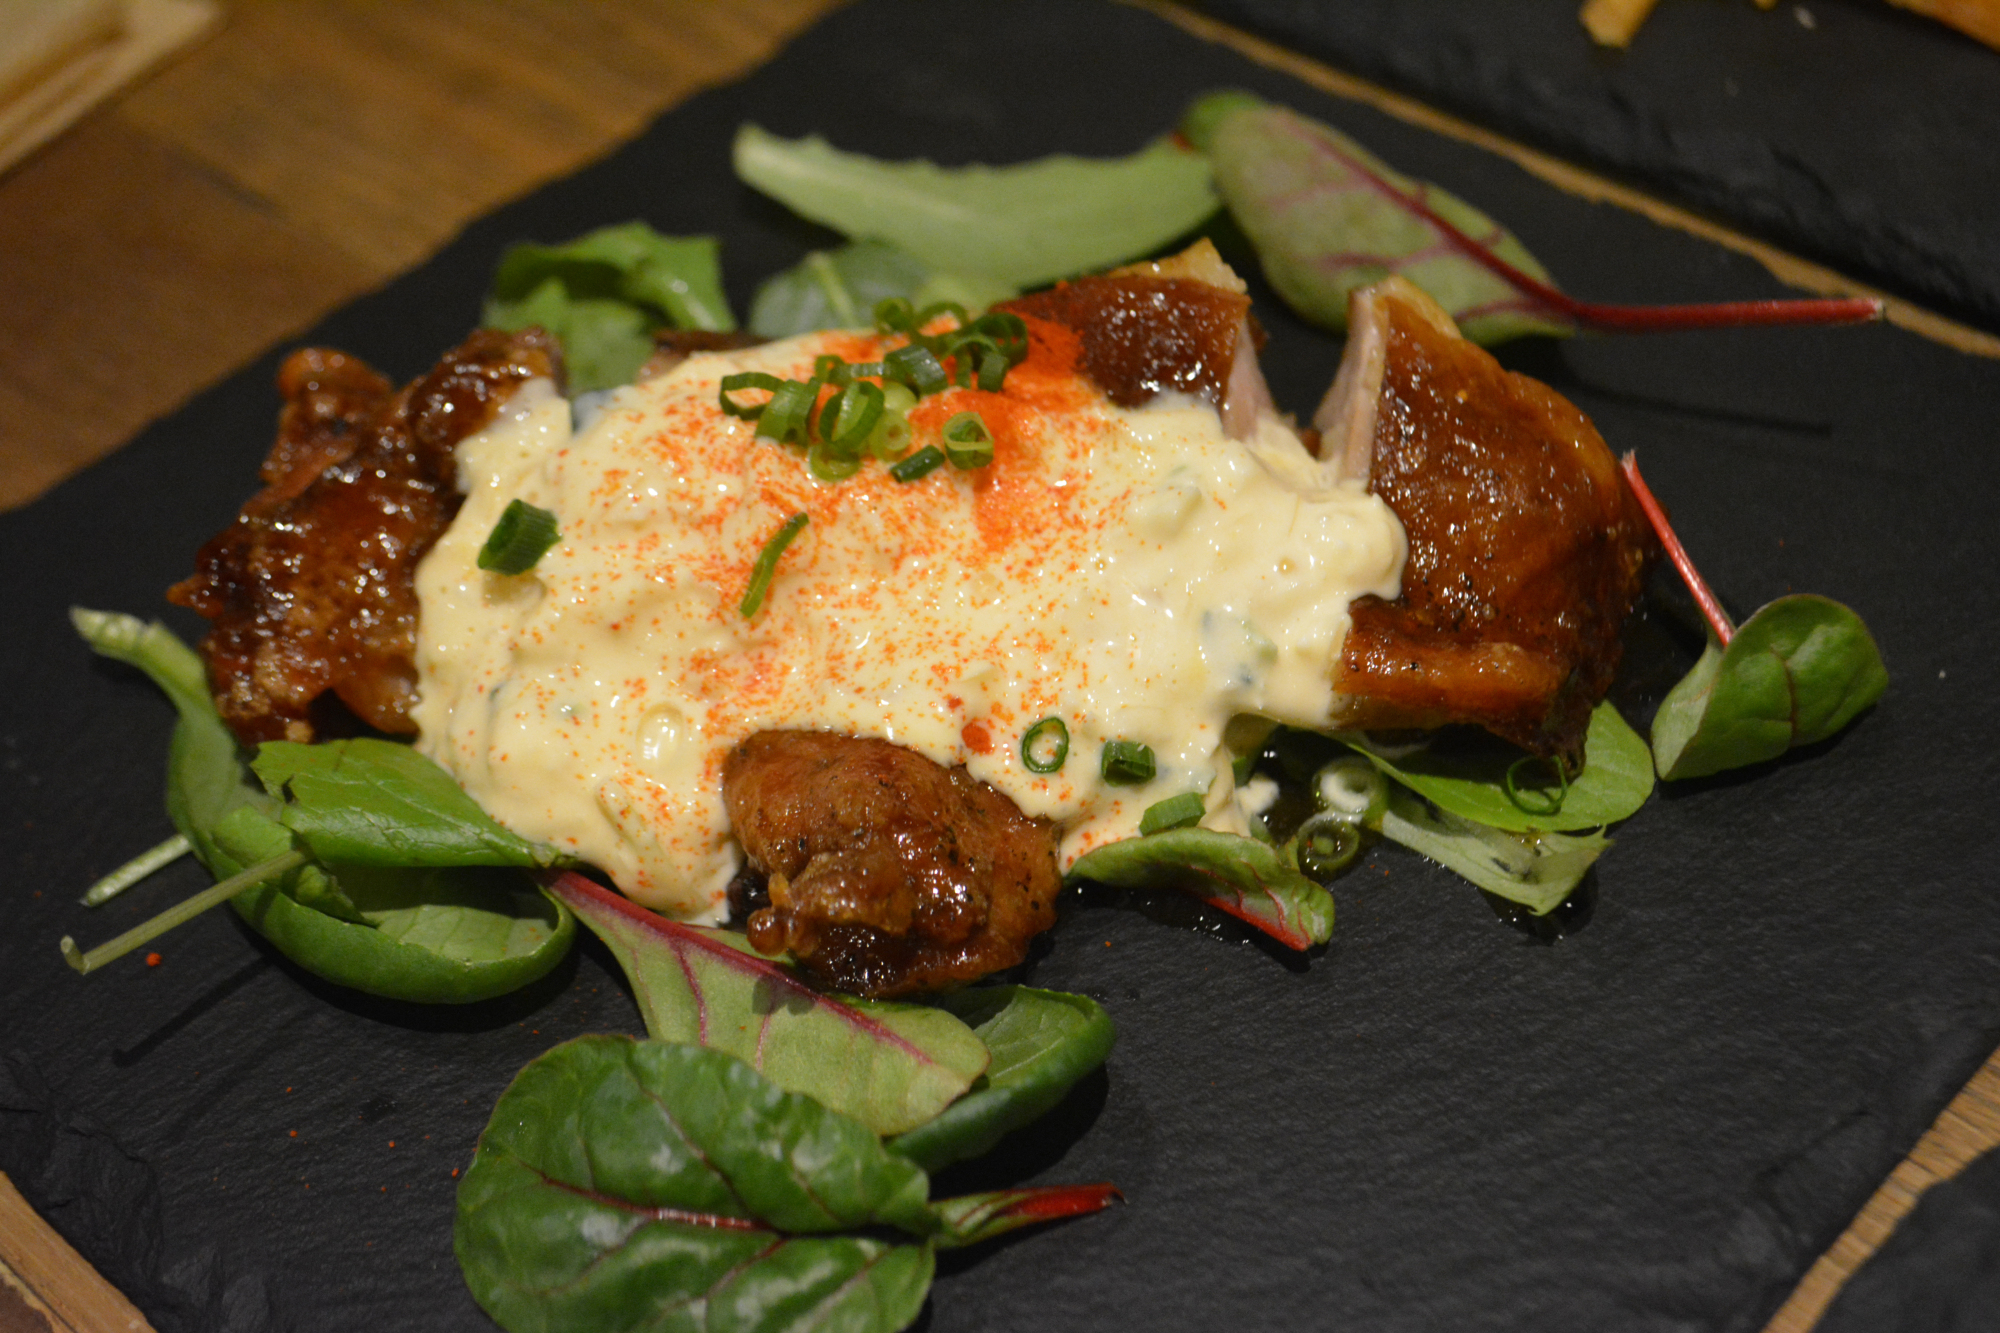 Chicken nanban with a twist: This dish comes thoroughly smoked and topped with tartar sause. | J.J. O'DONOGHUE